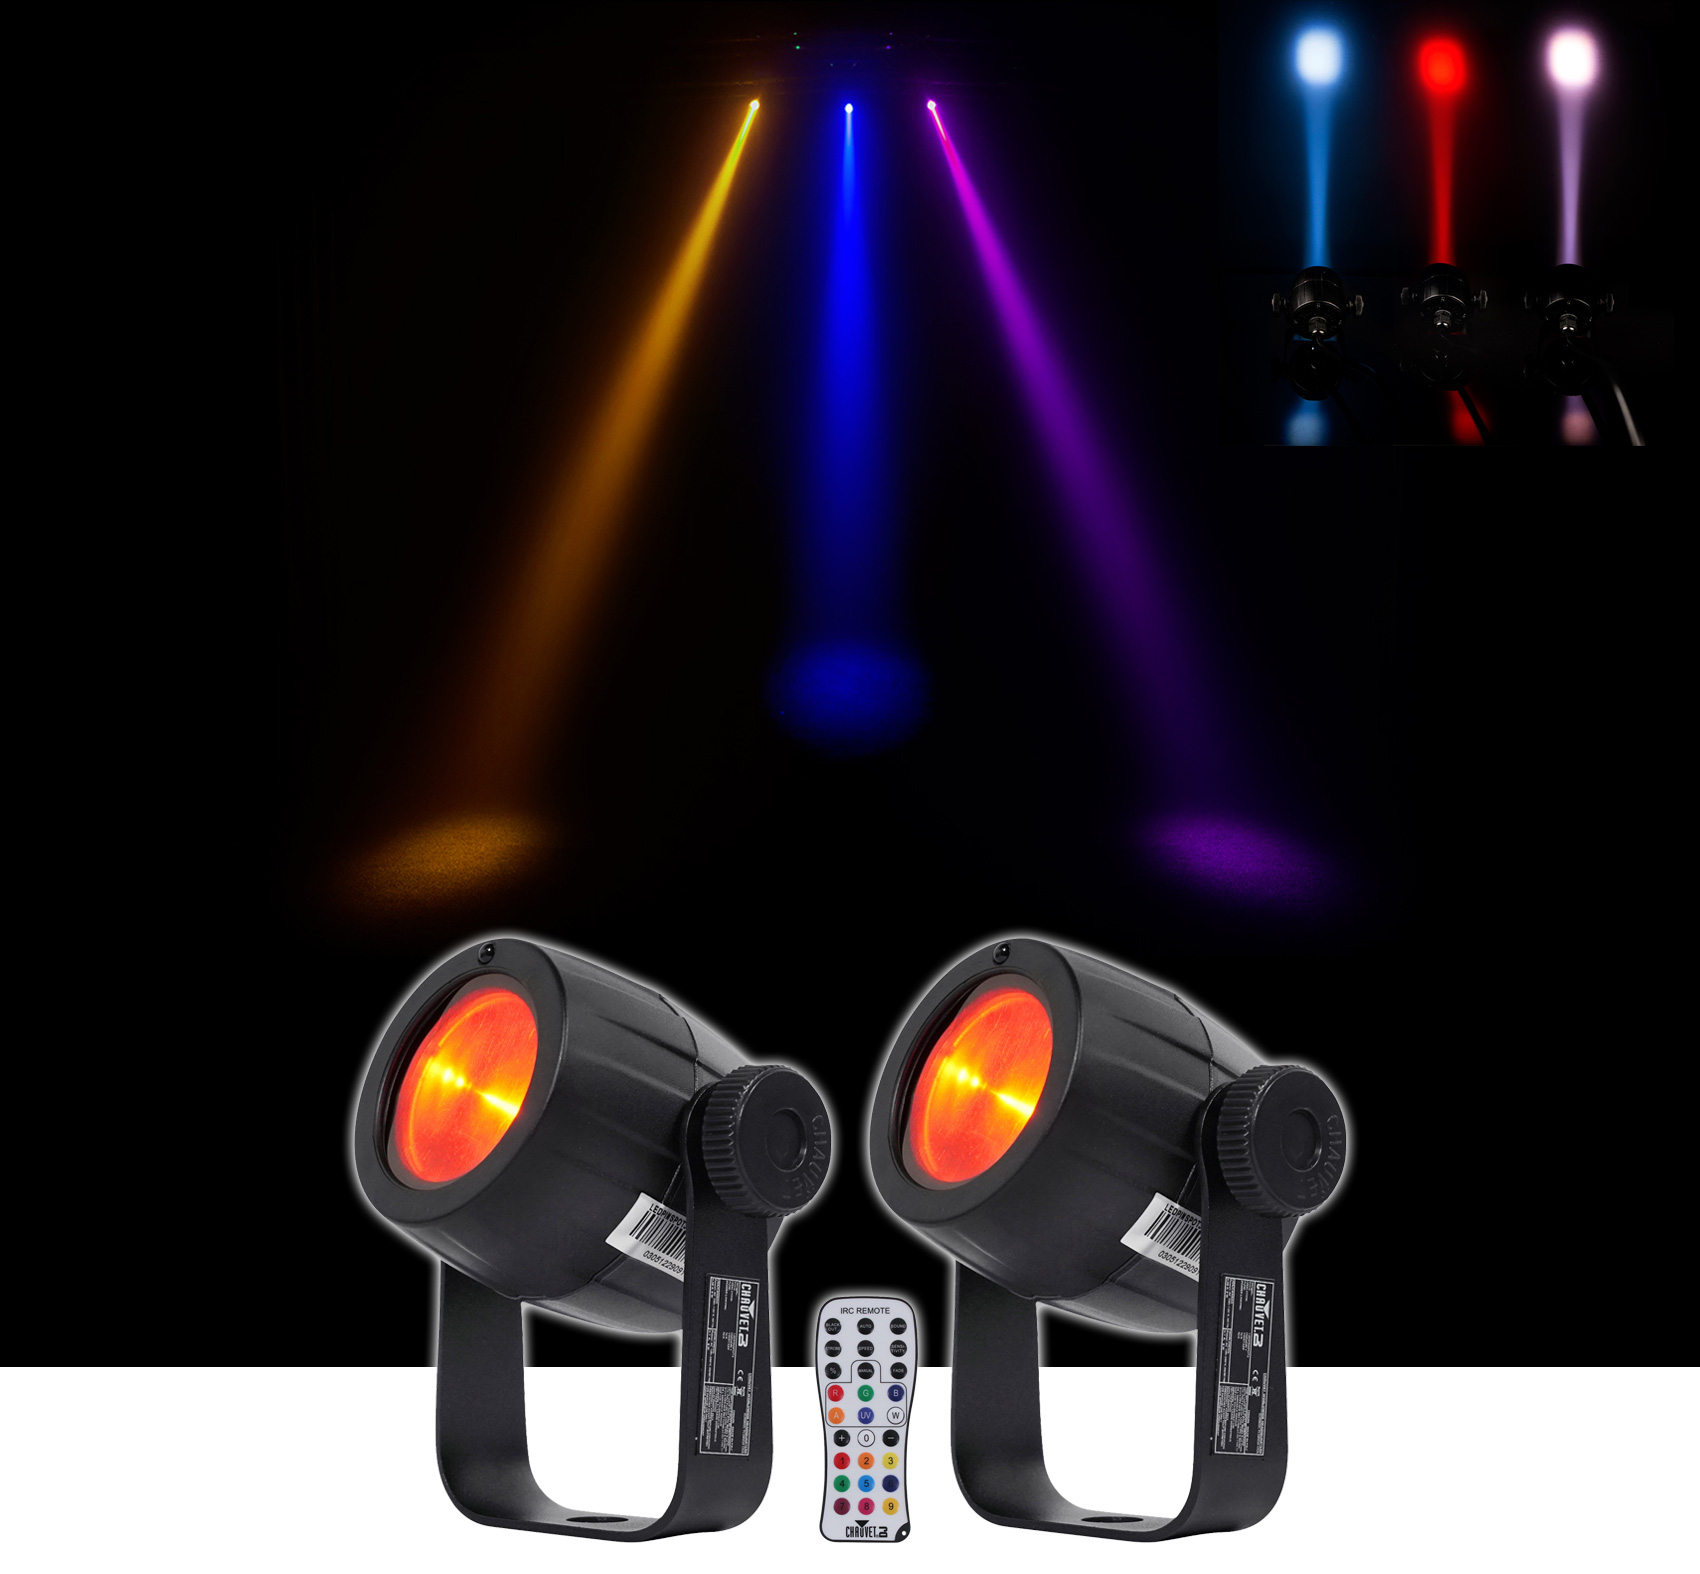 2) Chauvet DJ LED Pinspot 3 Club Mirror Ball Spot Light w Dimmer+Gel Pack+Remote by CHAUVET